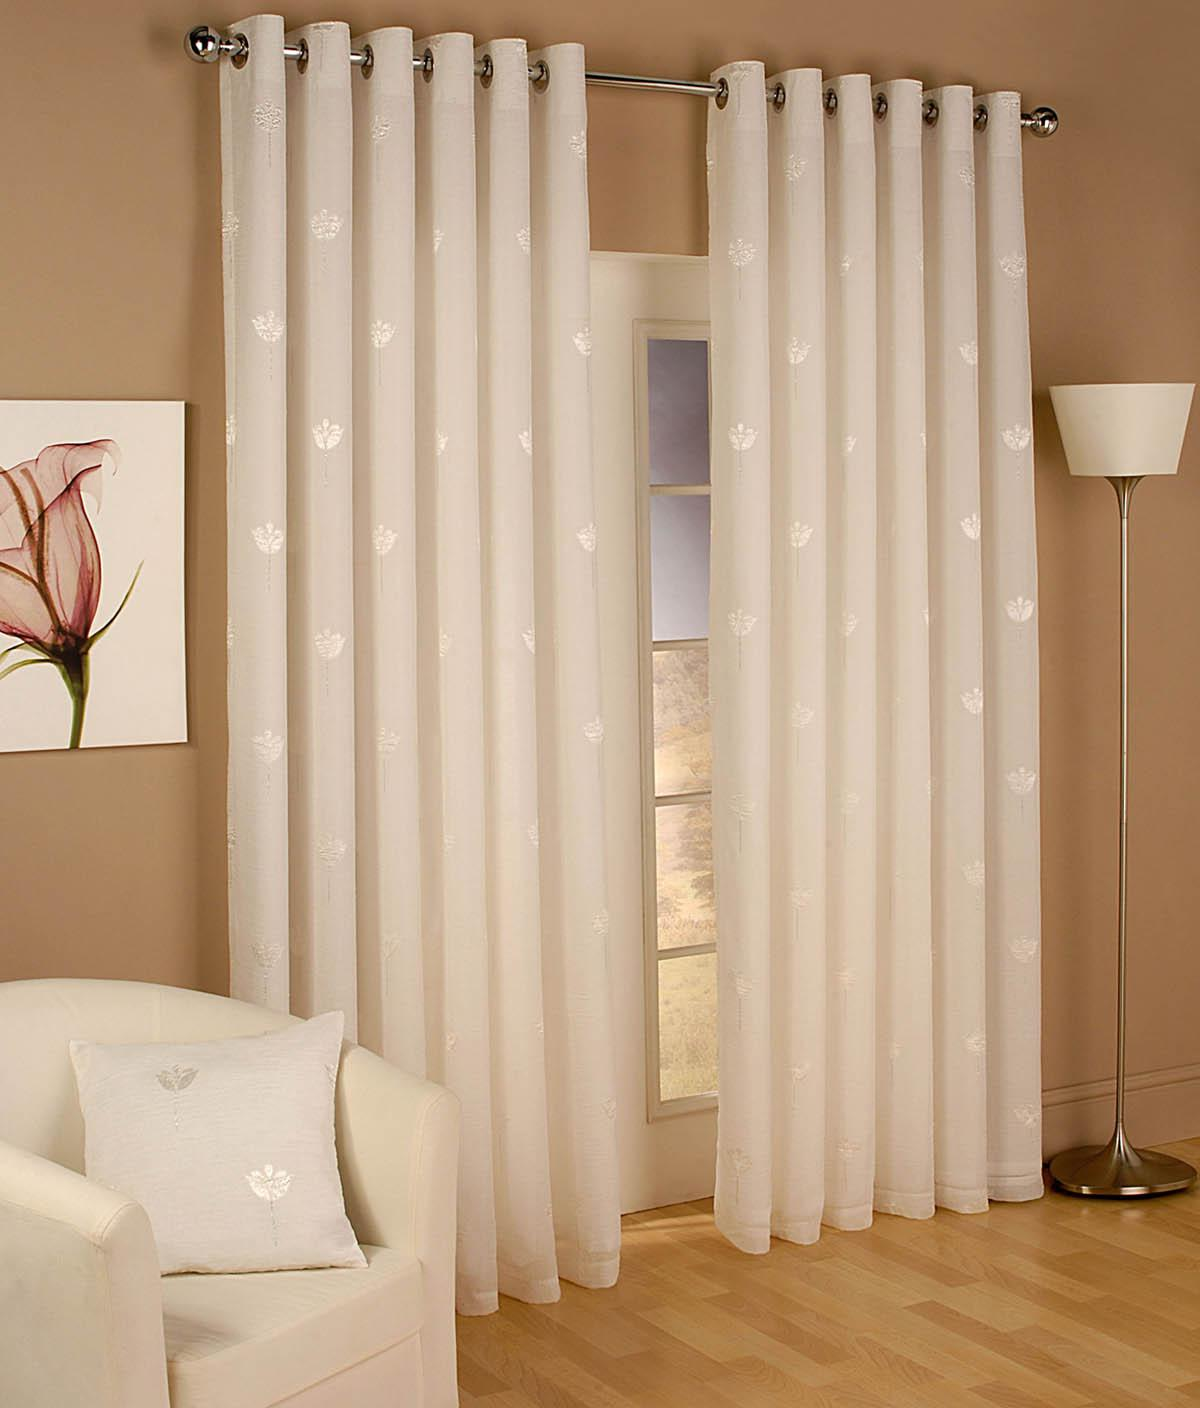 Miami Eyelet Voile Curtains Natural Cheap Prices UK Delivery